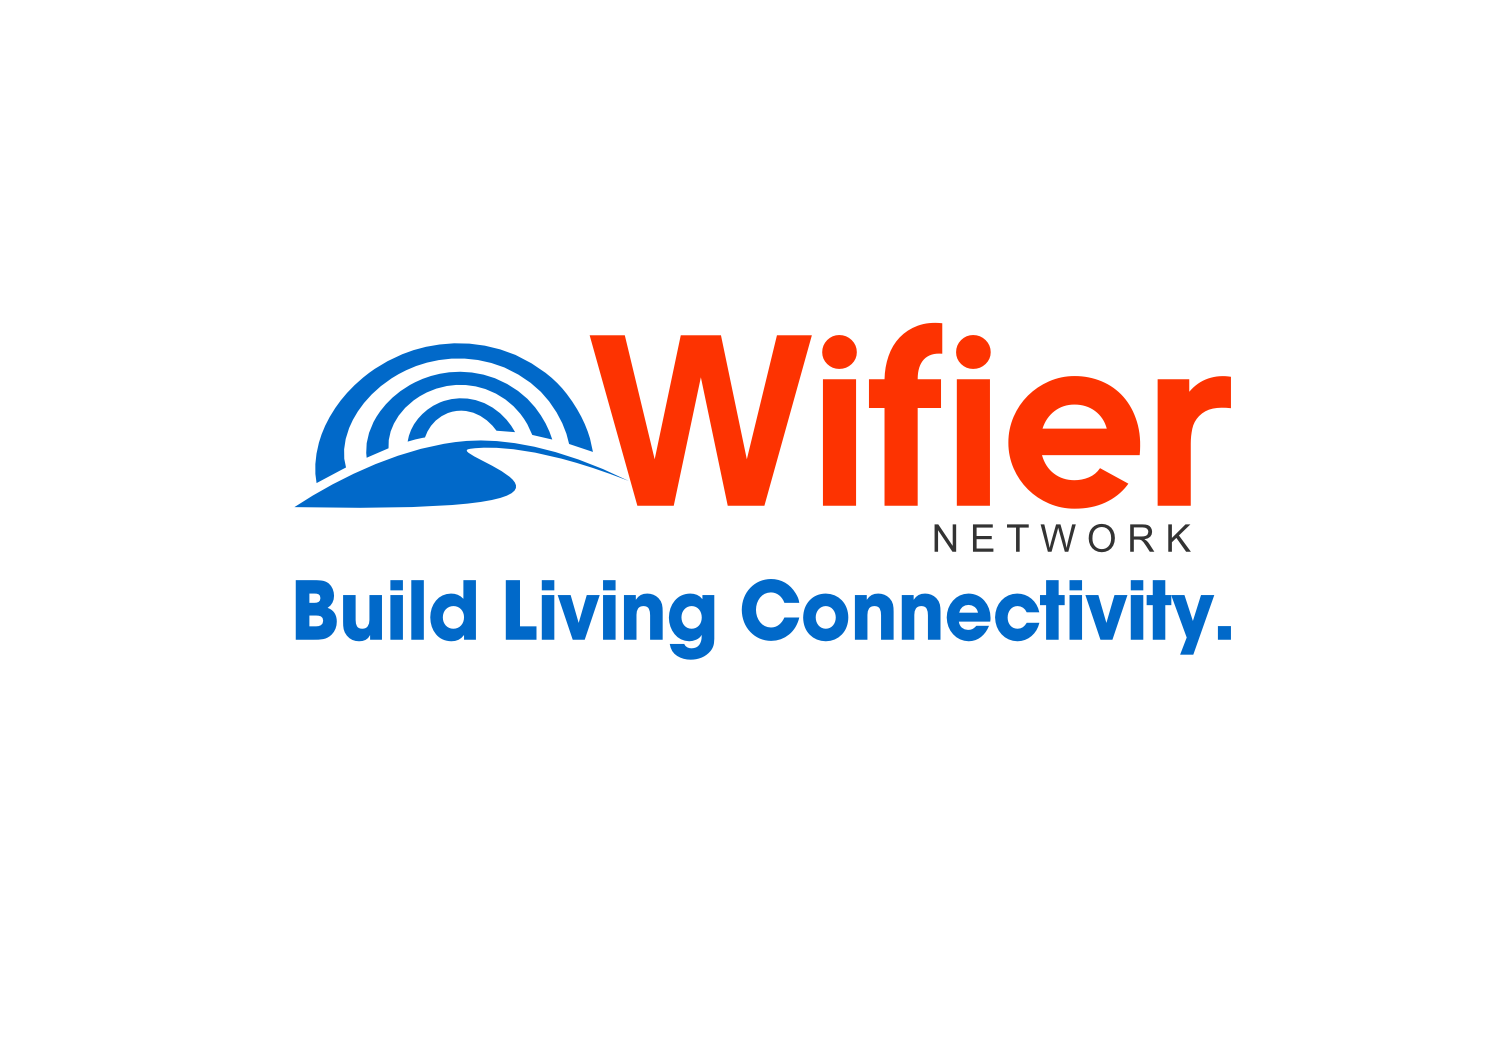 Logo Design by whoosef - Entry No. 100 in the Logo Design Contest New Logo Design for Wifier Network.